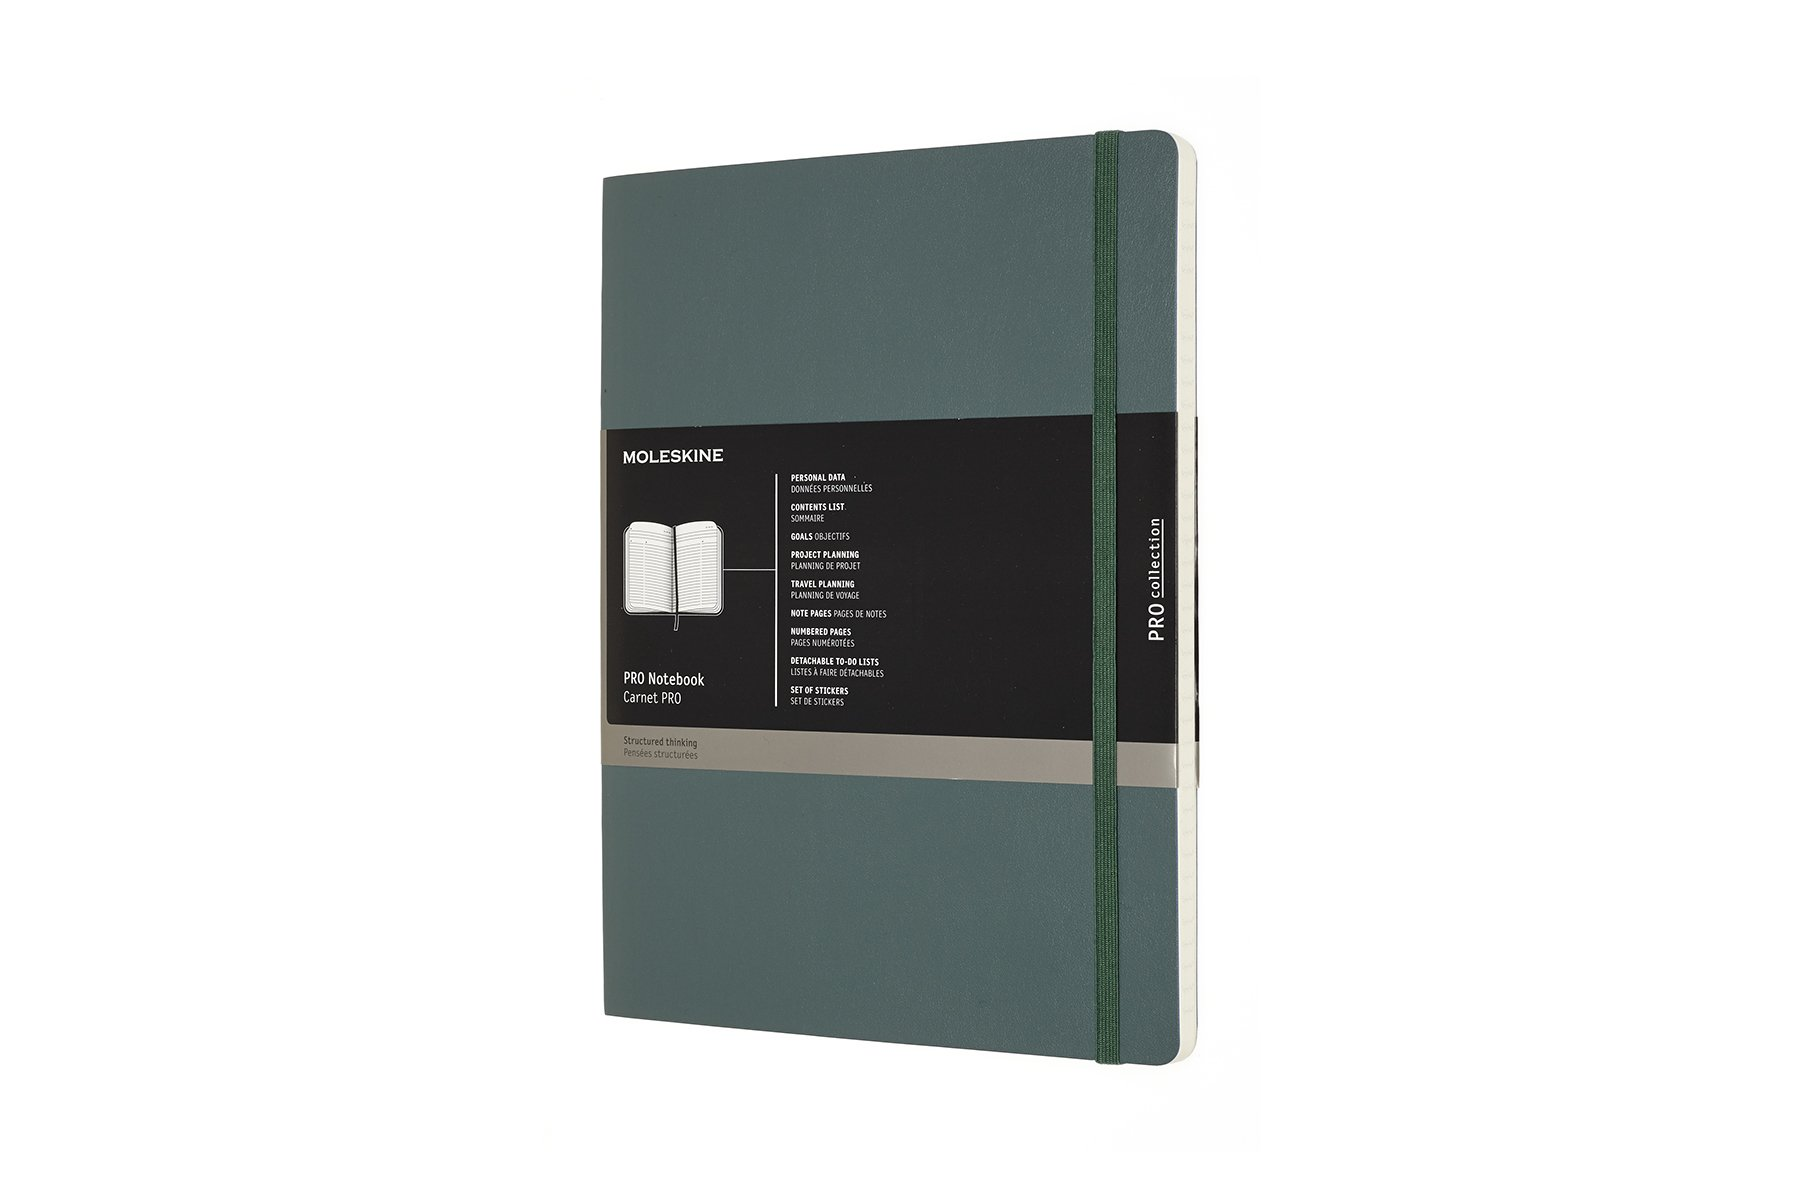 Moleskine Pro Soft Cover Notebook XL 7.5 x 9.75 Forest Green